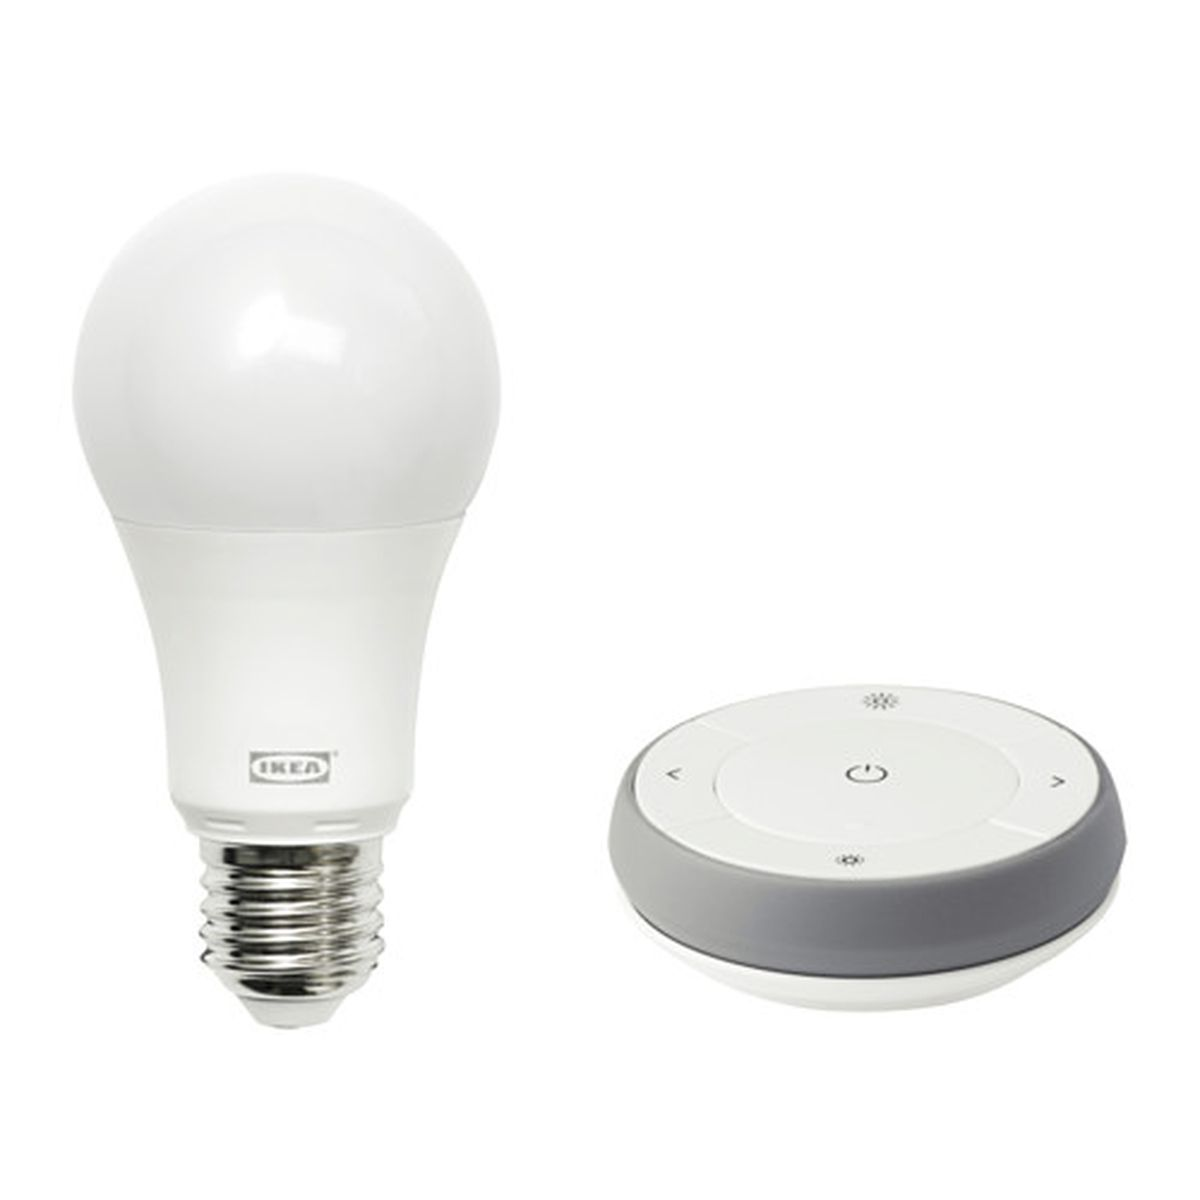 Ikea S Multi Color Smart Bulbs Are Now Widely Available